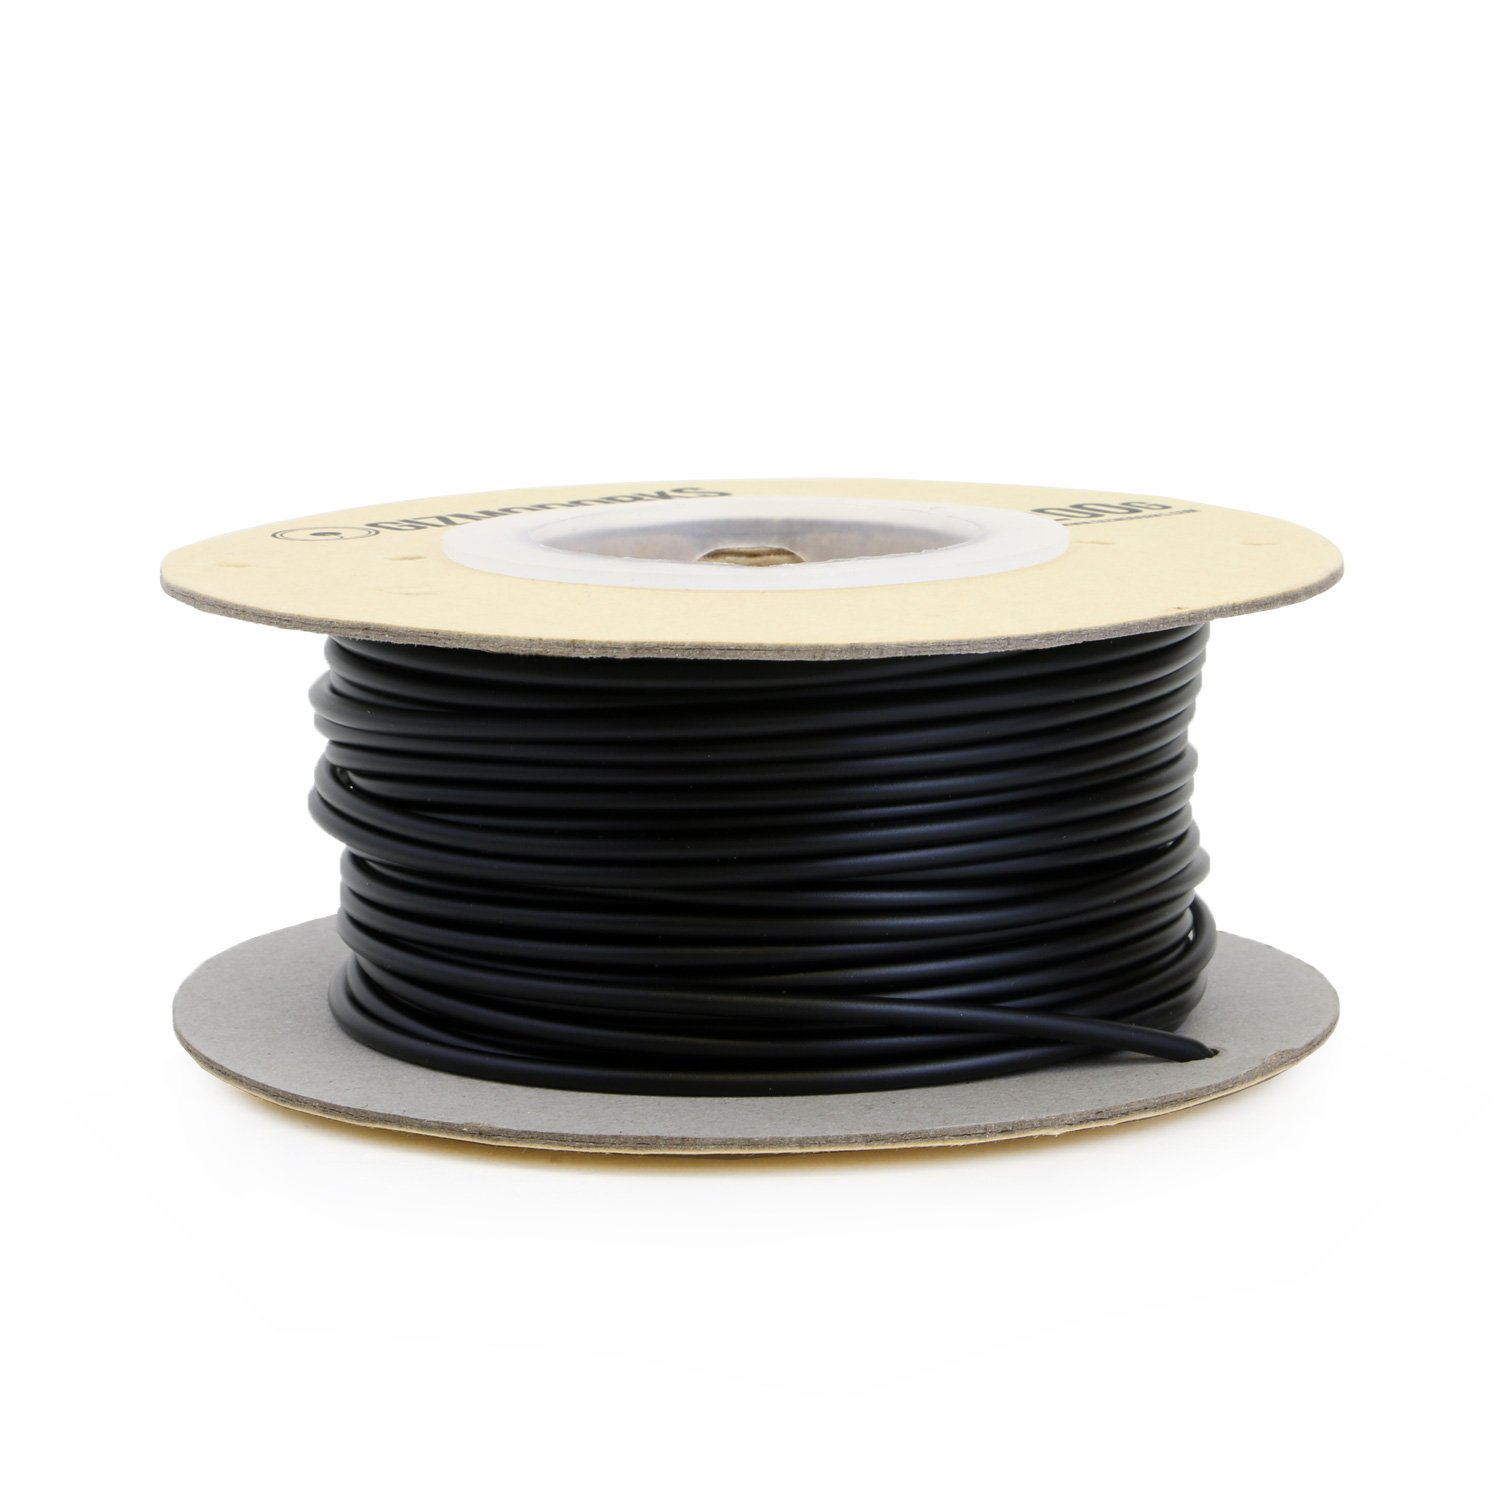 Black Gizmo Dorks ABS Filament for 3D Printers 1.75mm 200g